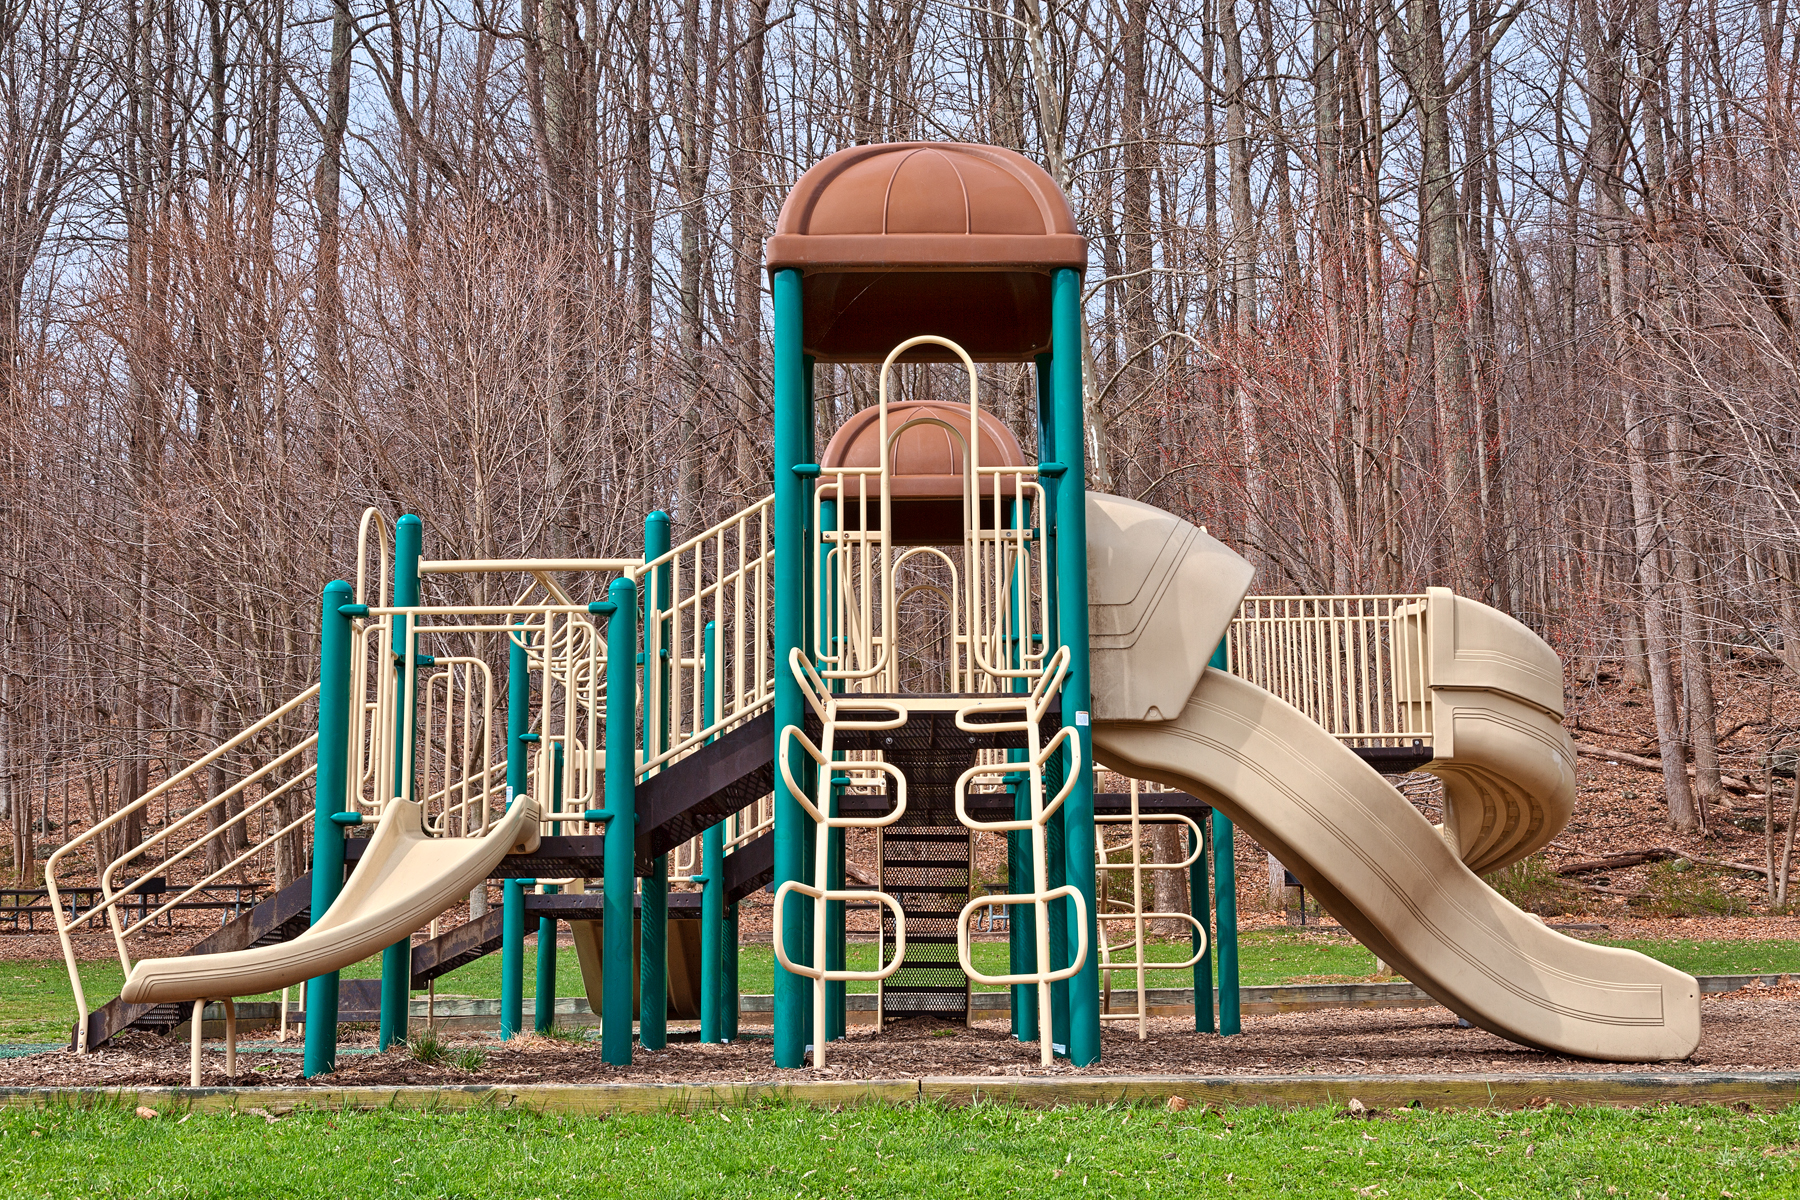 Cunnningham playground - hdr photo